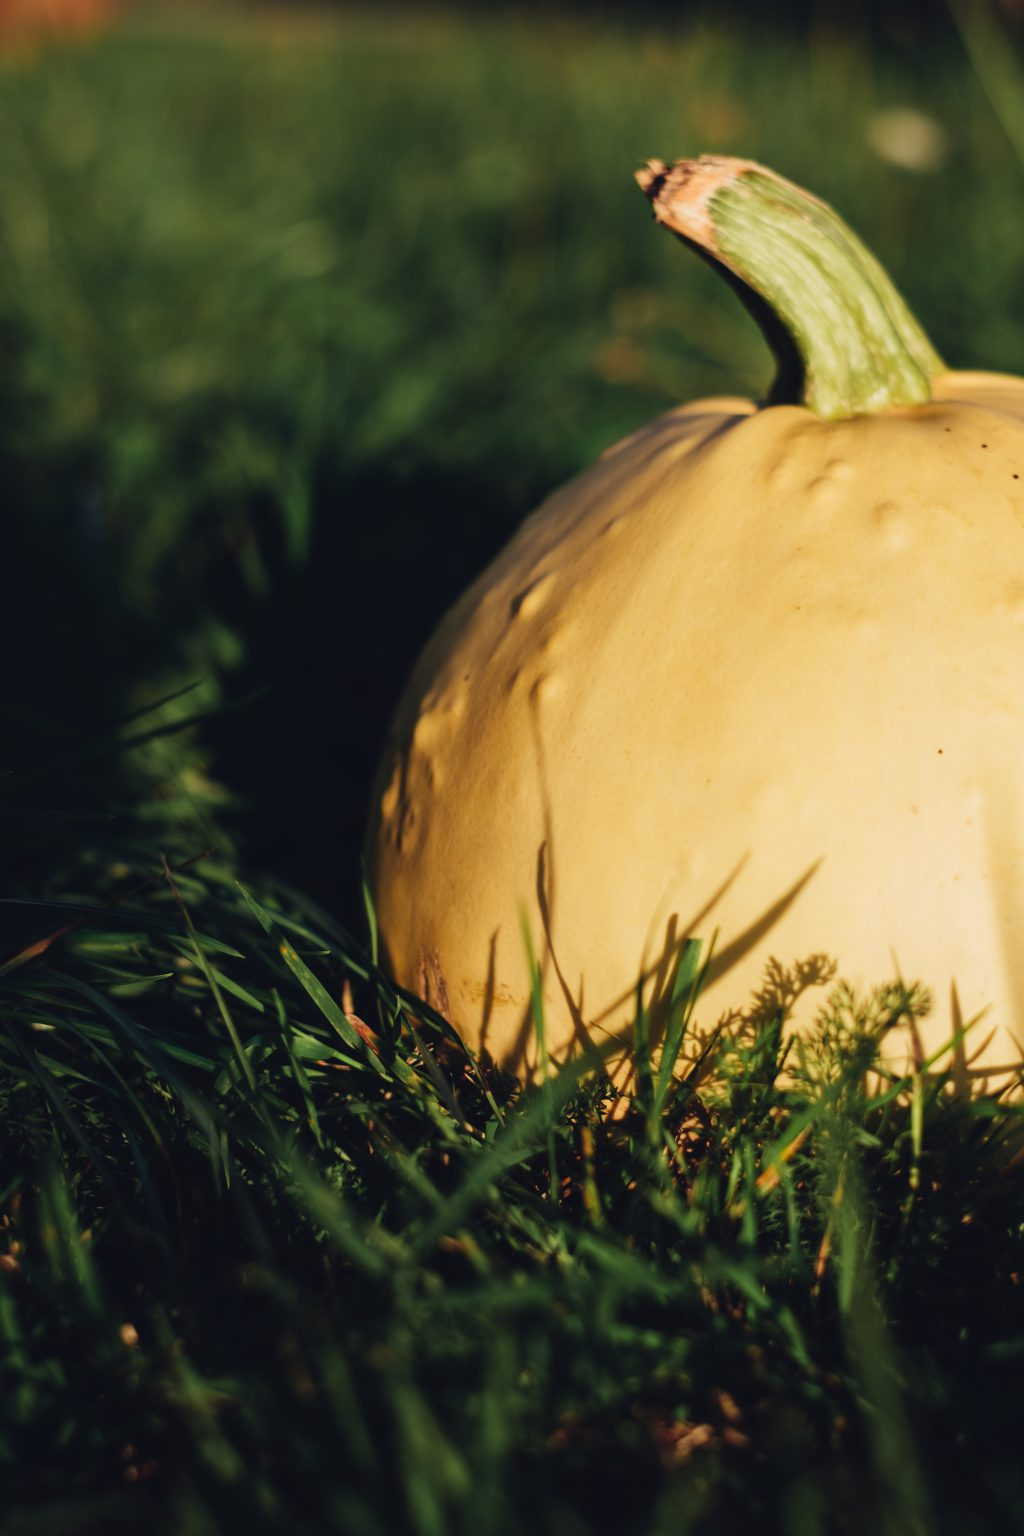 Pale yellow pumpkin on the grass 5 - free stock photo